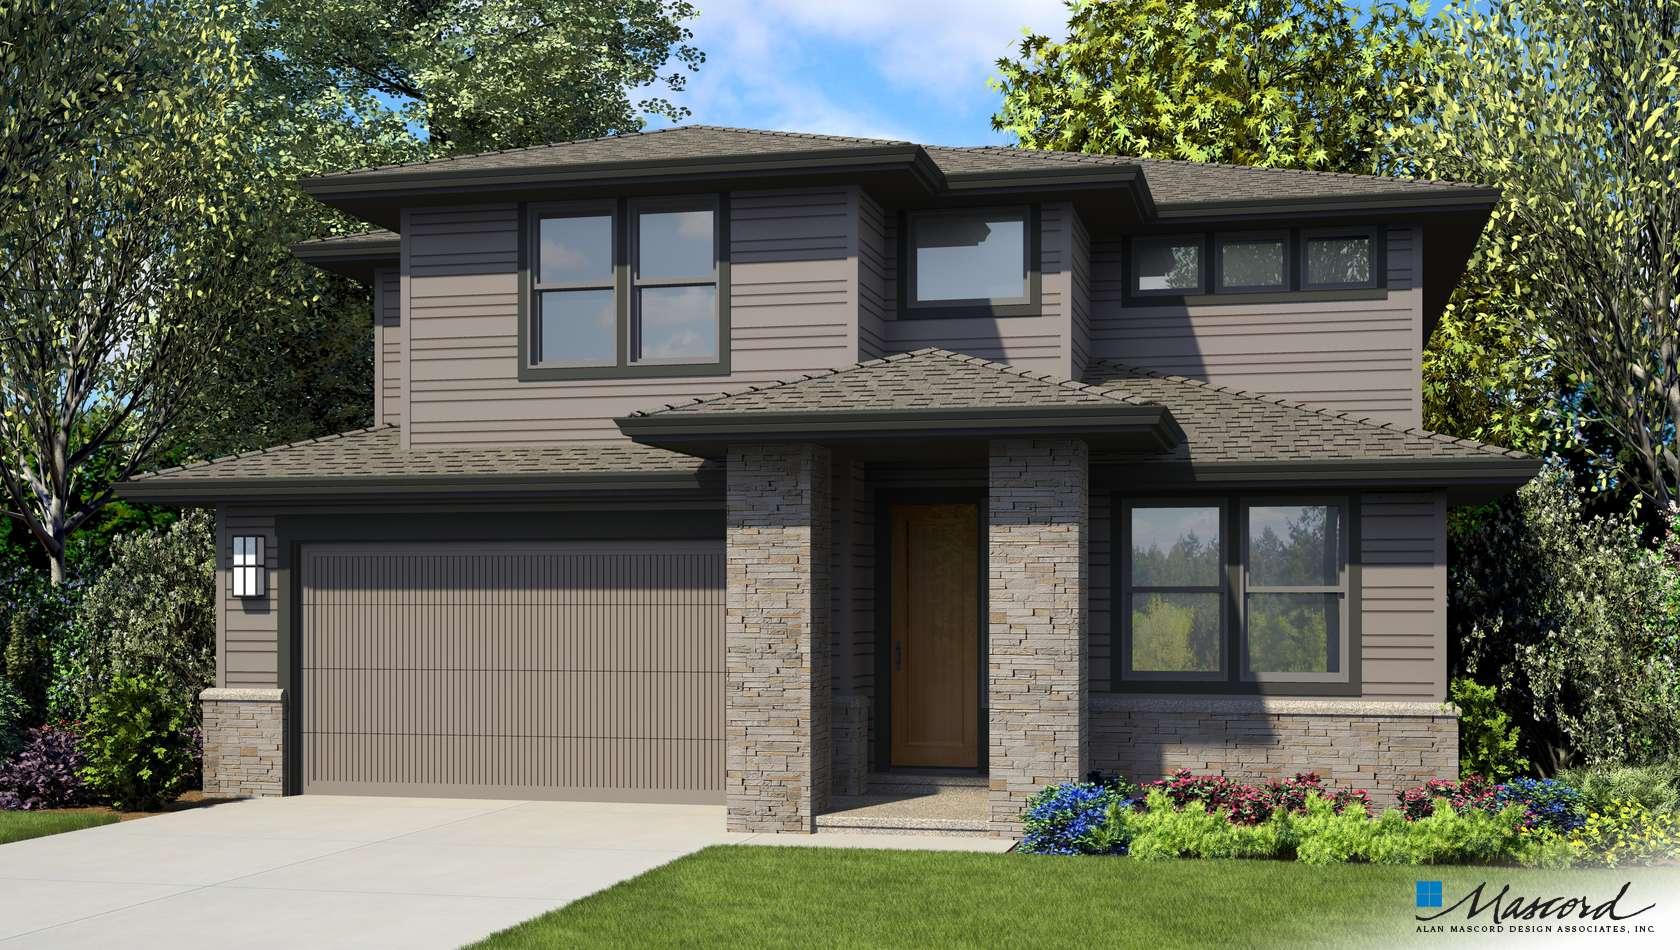 Main image for house plan 2230CH: The Garden Grove